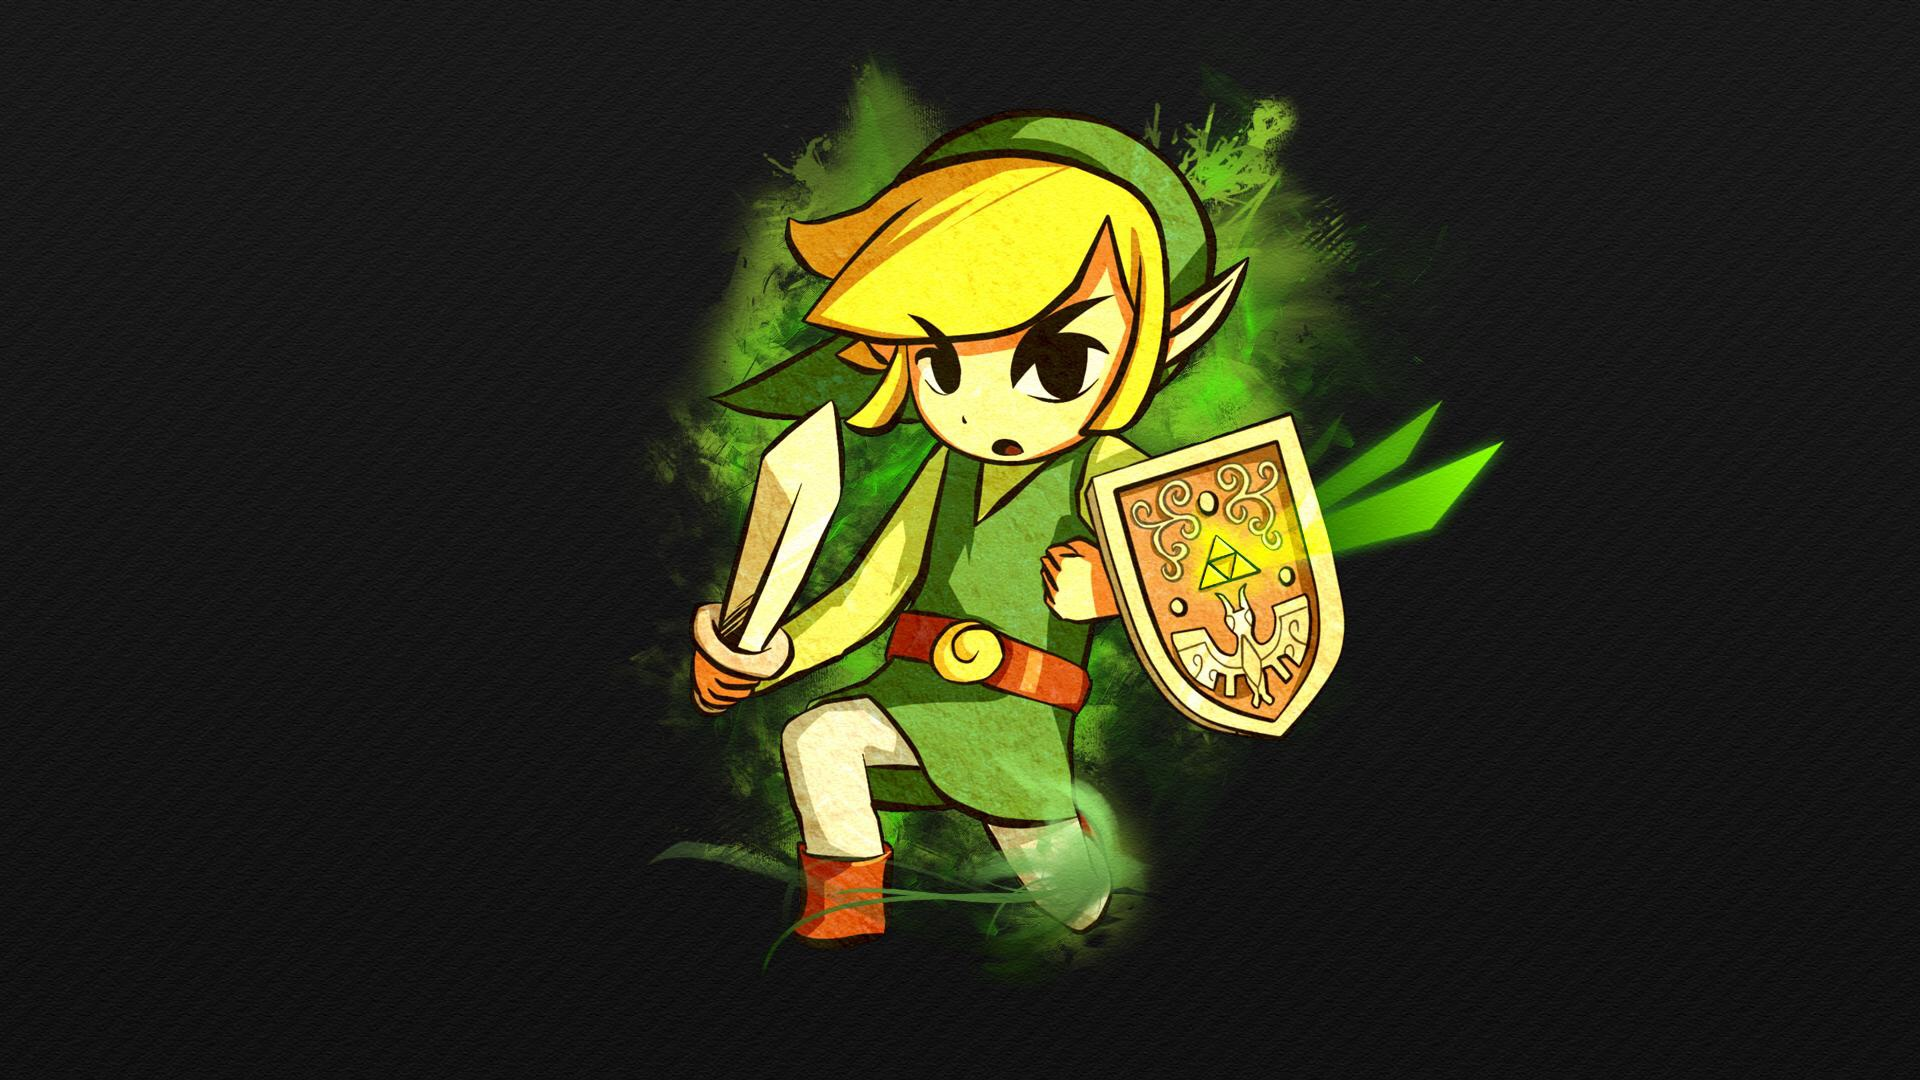 Zelda Hd Wallpaper Link Wallpaper Wind Waker 301430 Hd